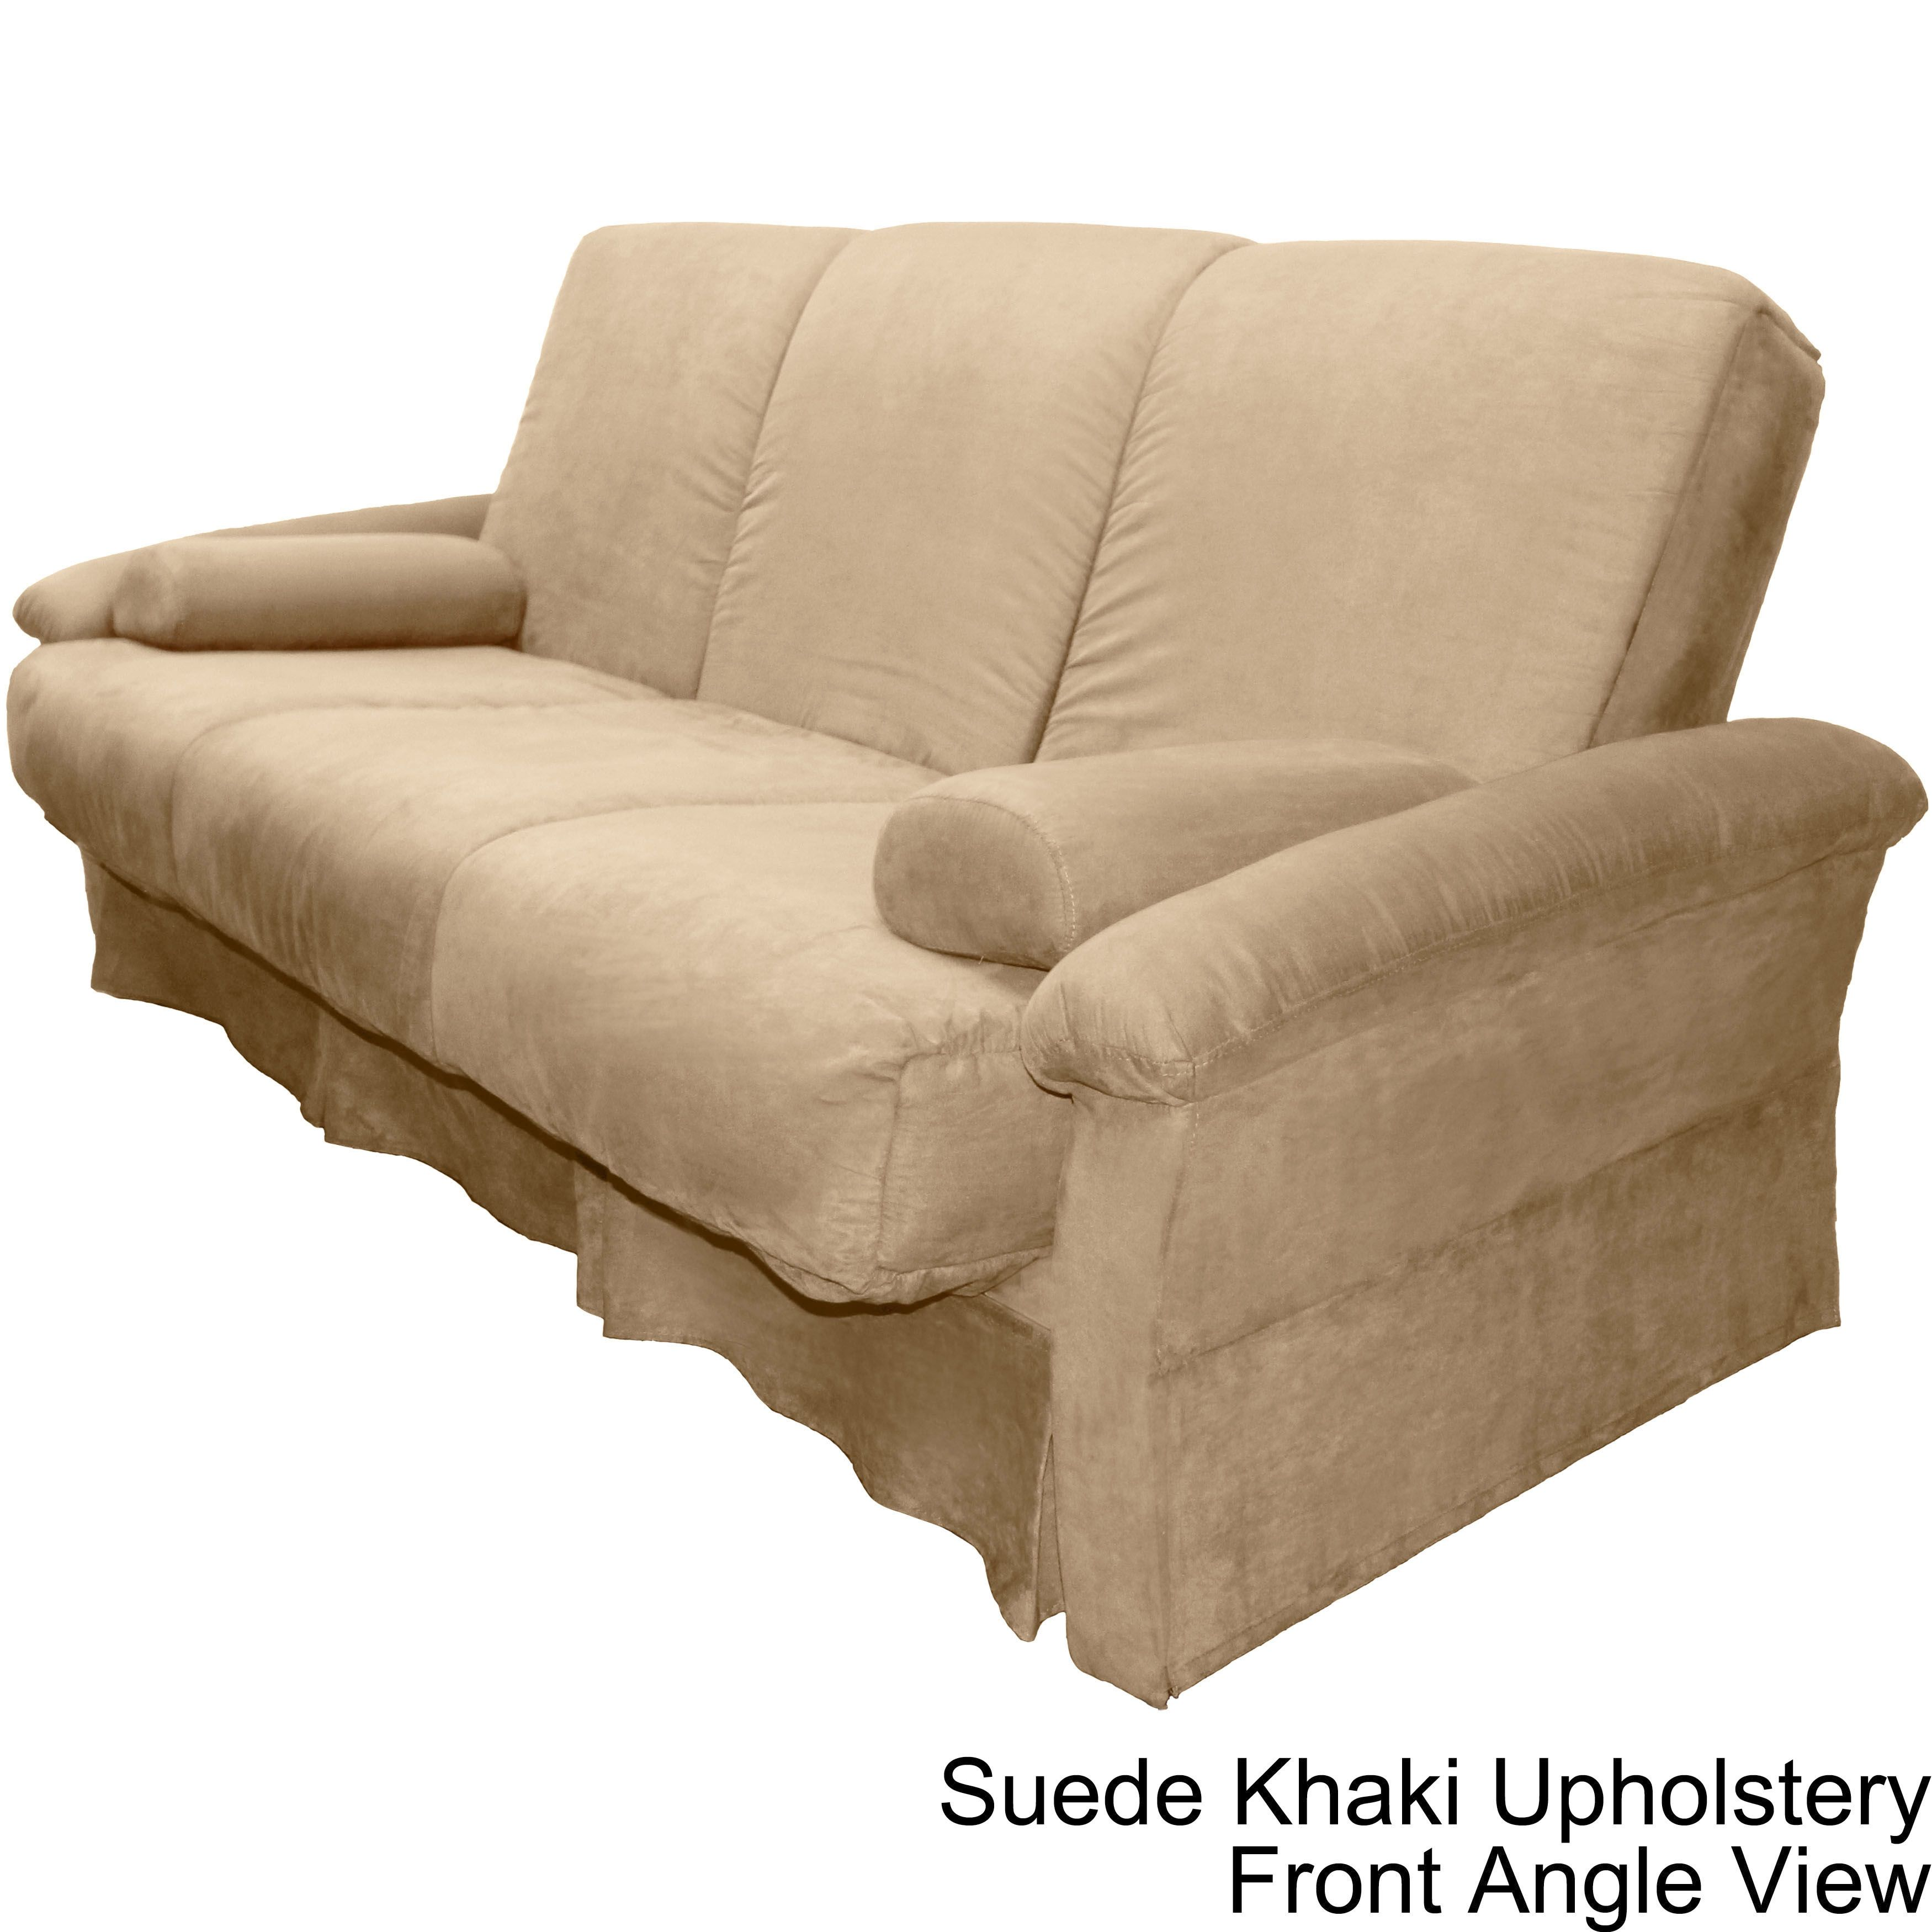 epicfurnishings taylor perfect sit and sleep transitional pocketed